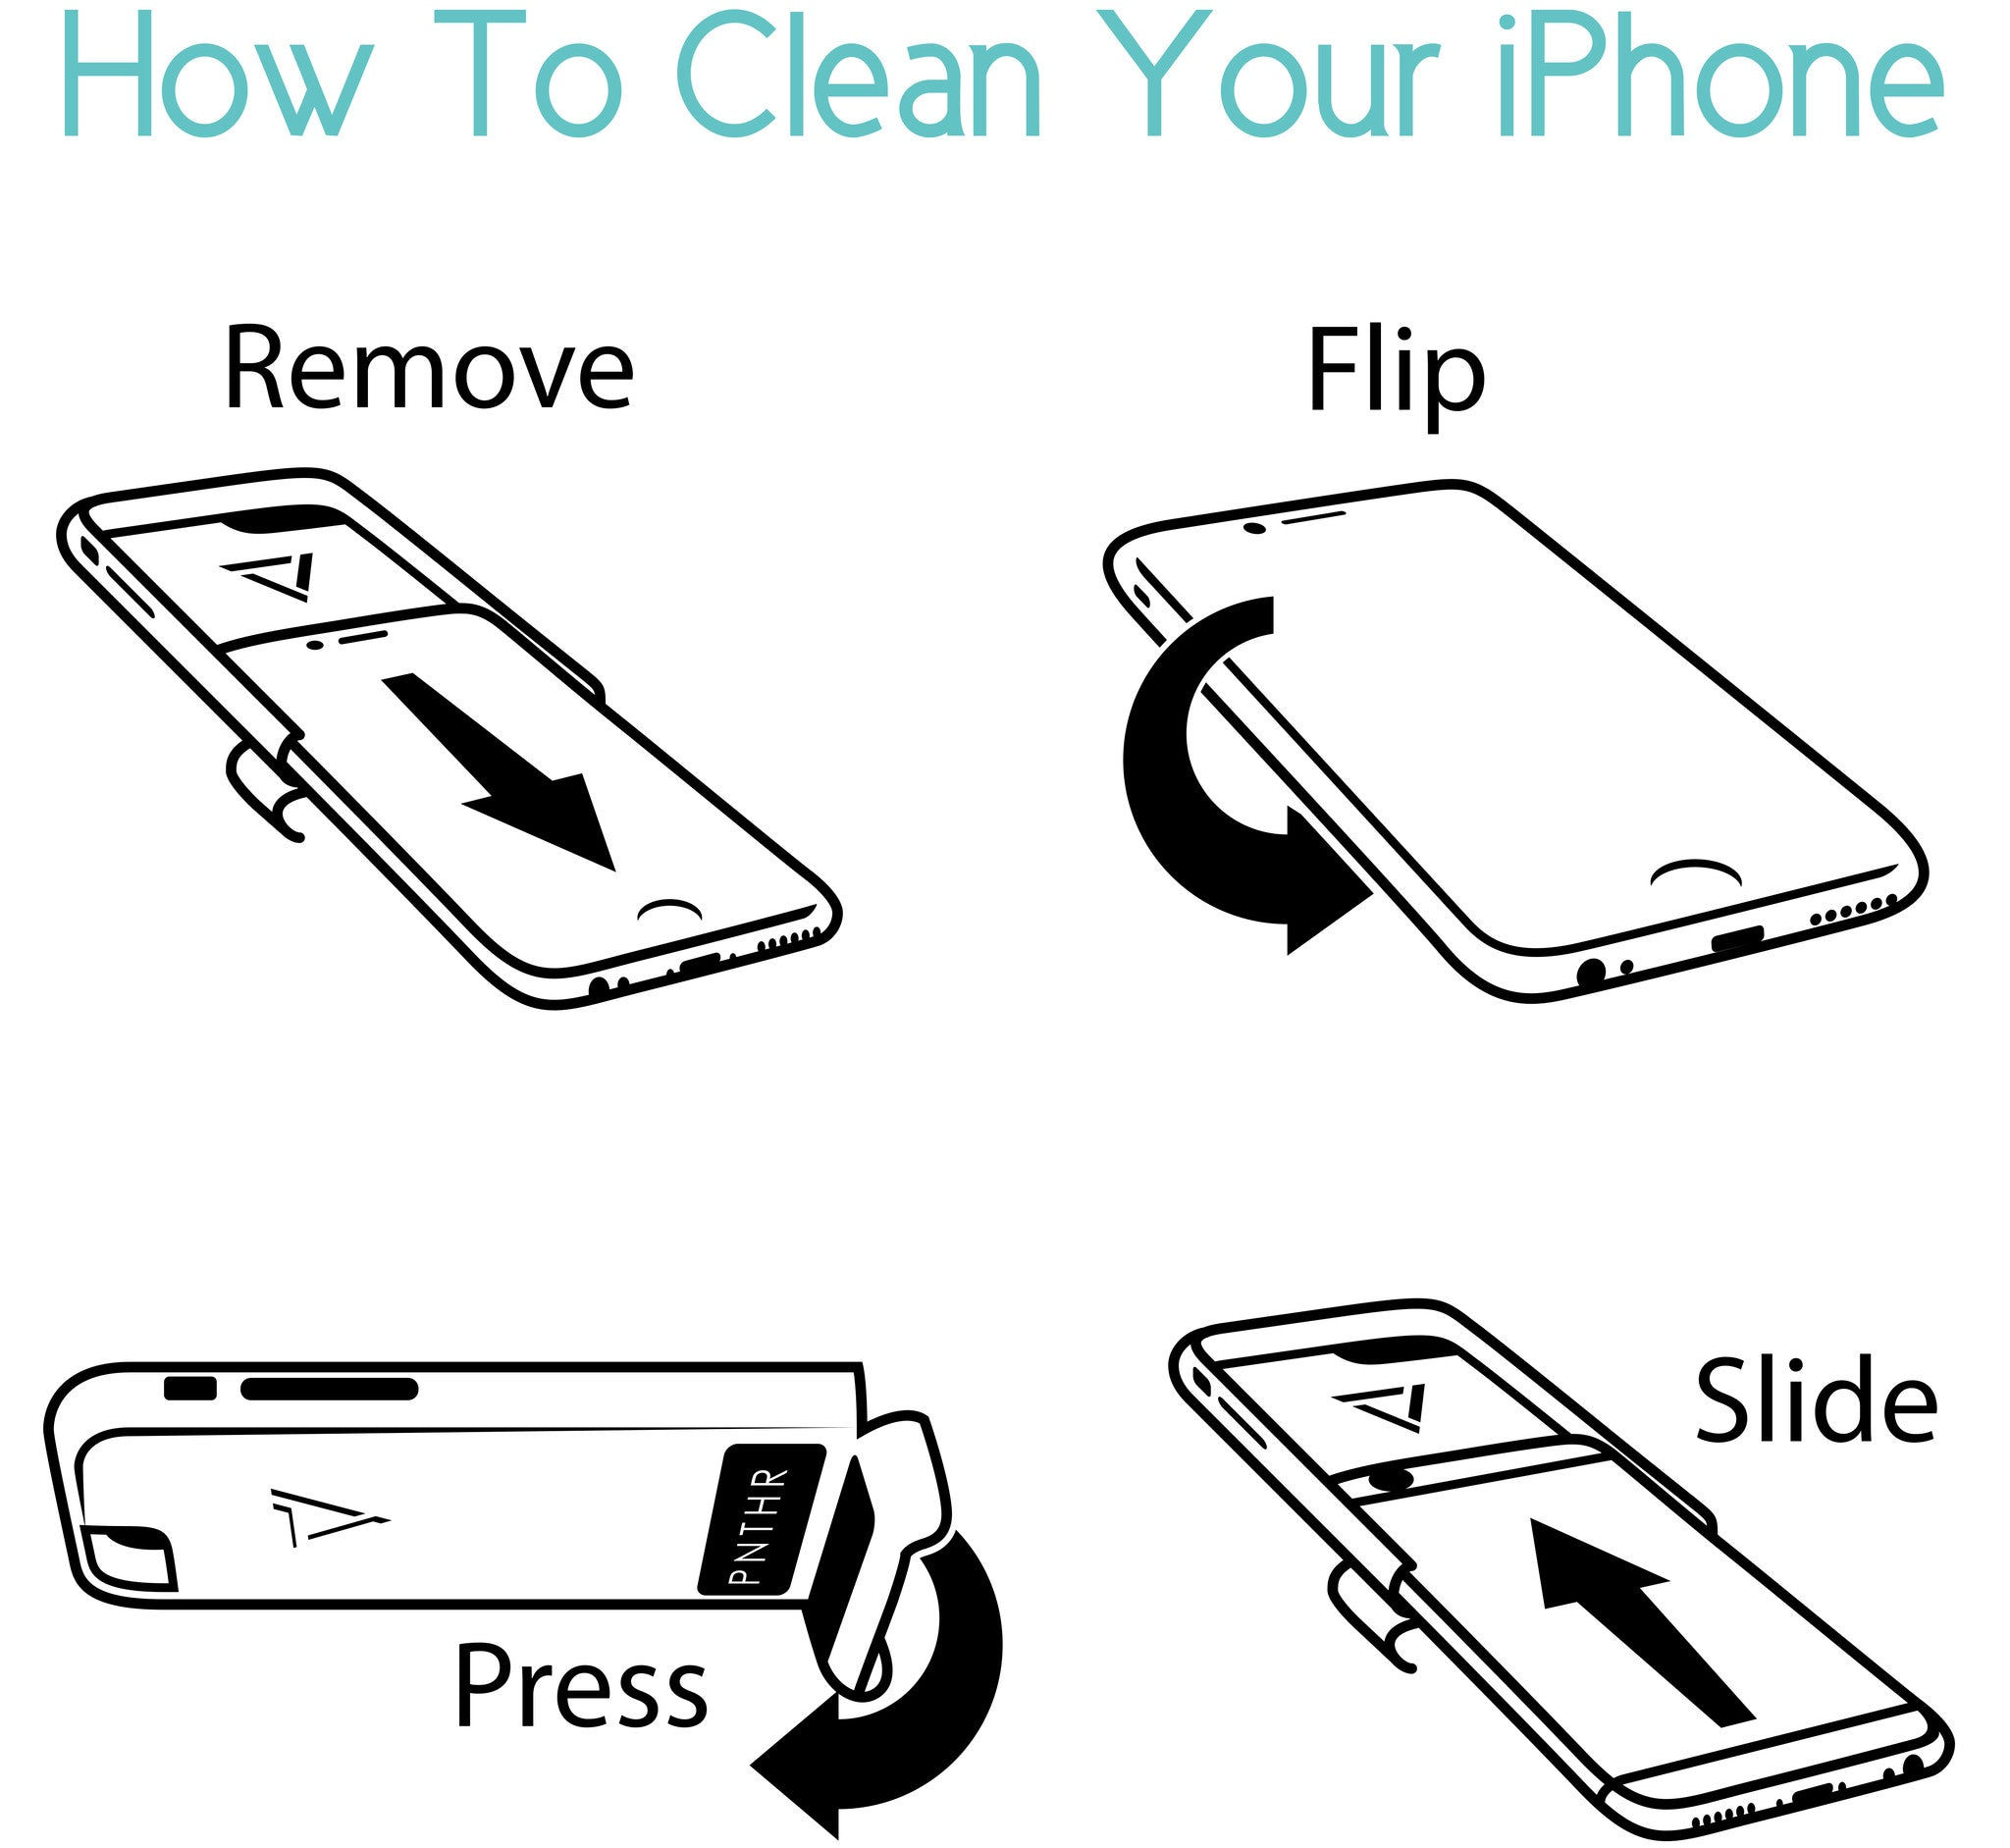 How To Clean Your iPhone Instructional Diagram